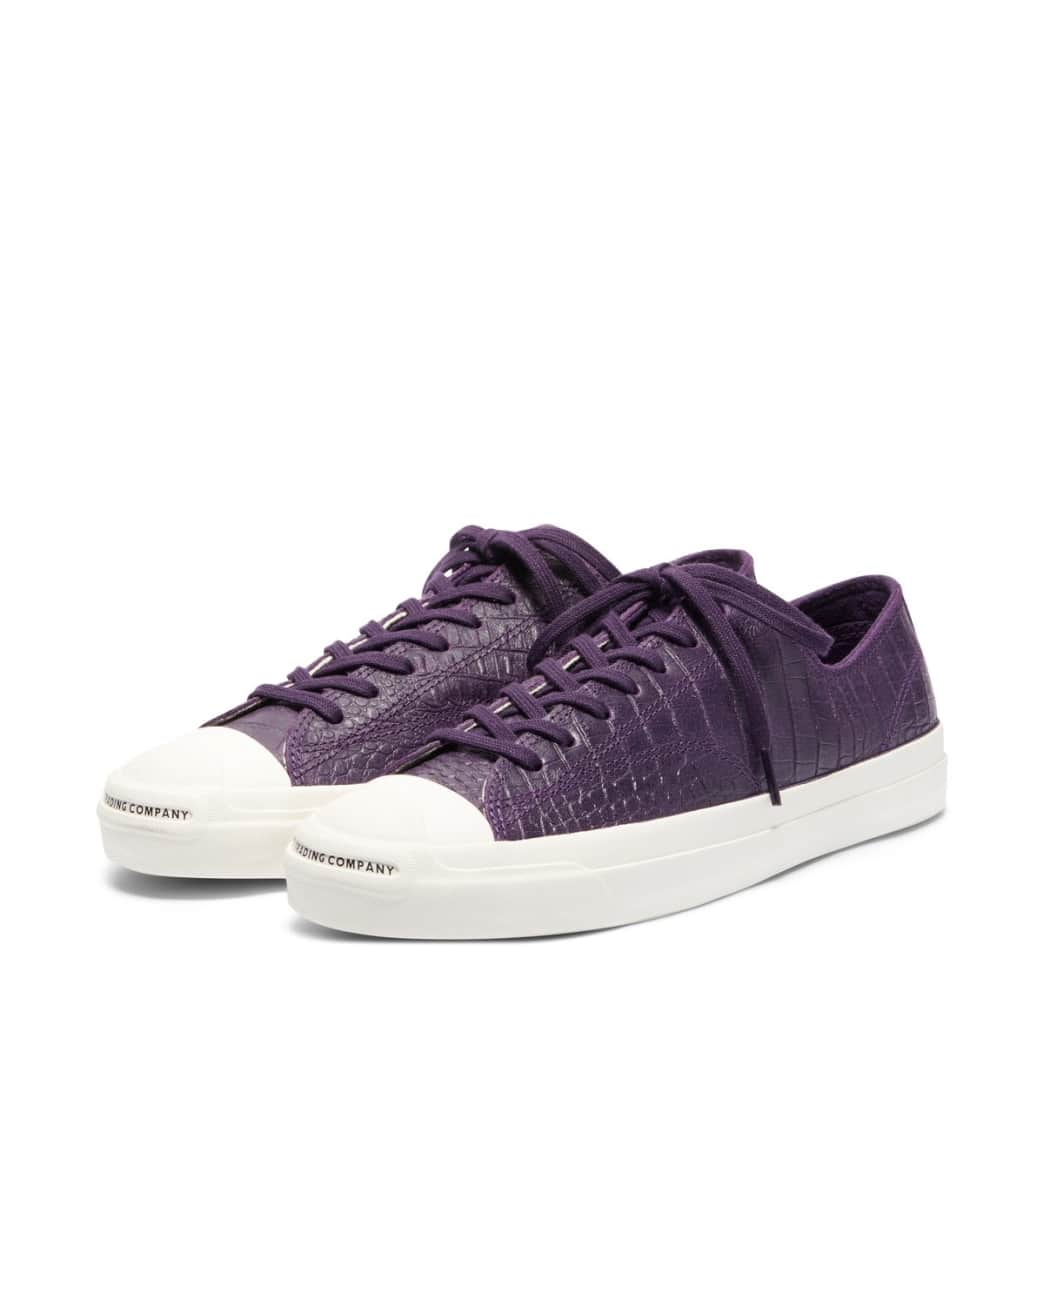 Converse CONS x Pop Trading Company JP Pro Ox Shoes - Dark Purple 'Dragonskin' | Shoes by Converse Cons 2